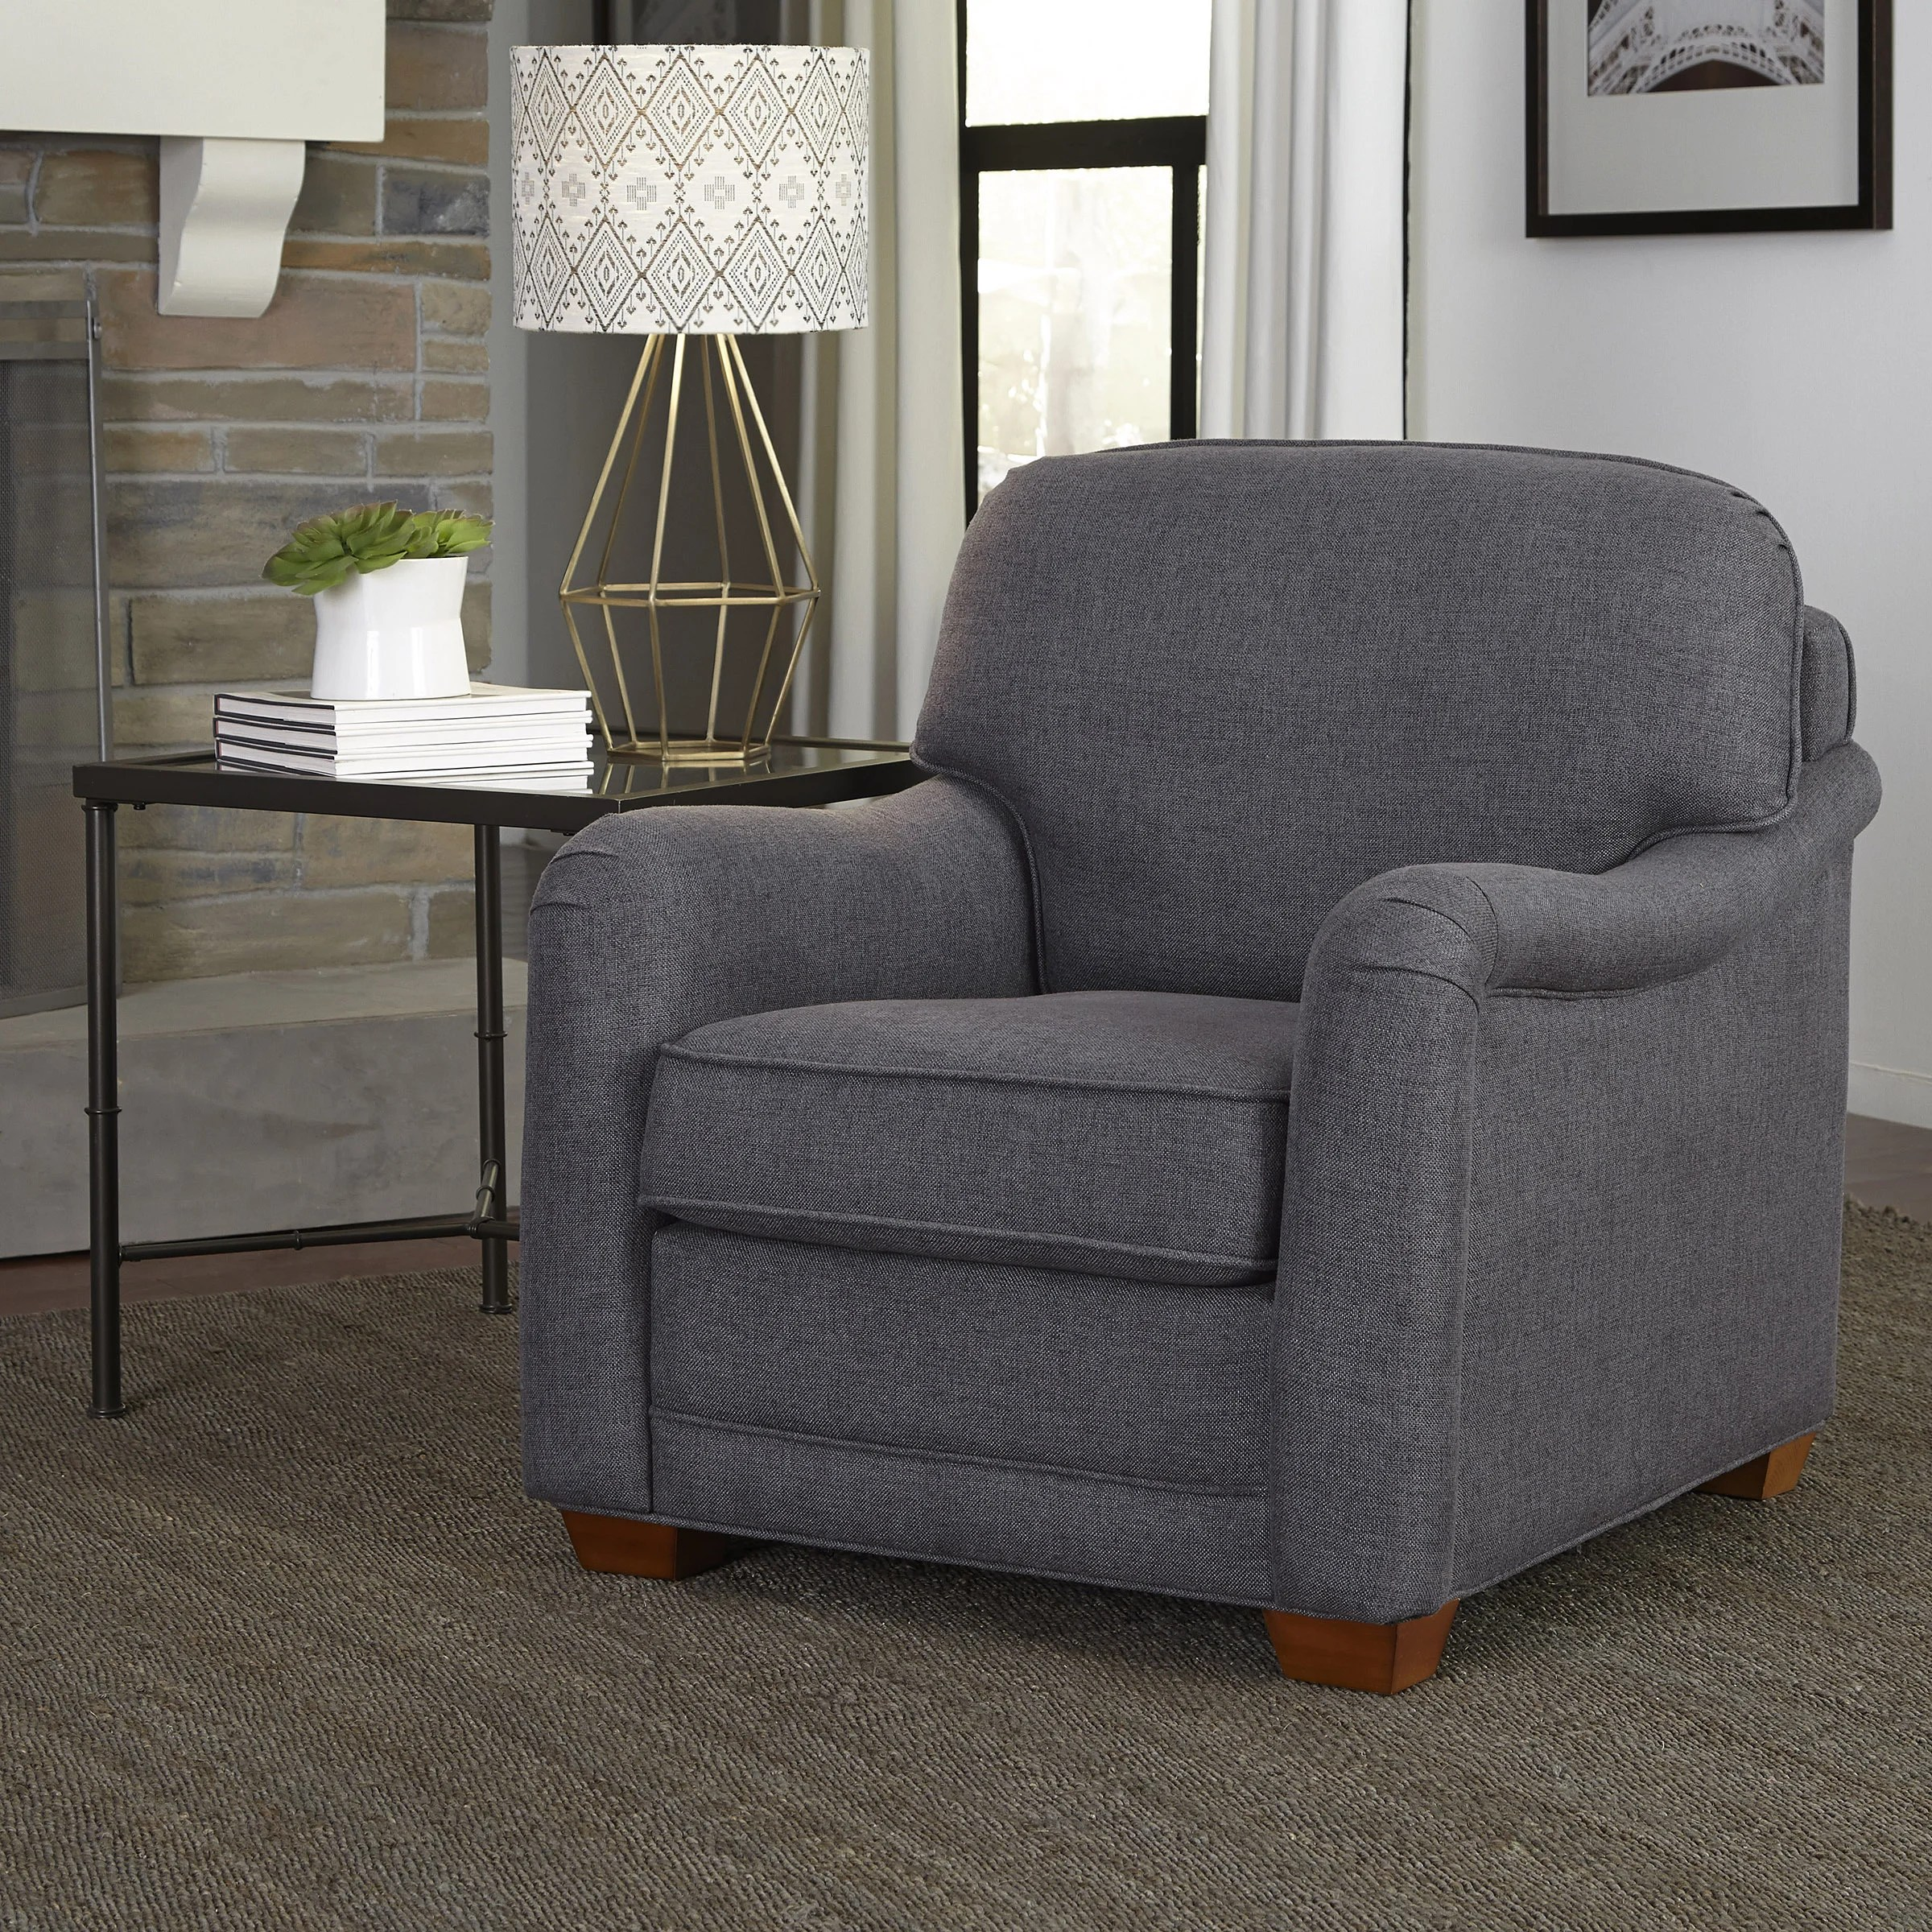 Stationary Chair Details About Magean Grey Upholstered Stationary Chair By Home Styles